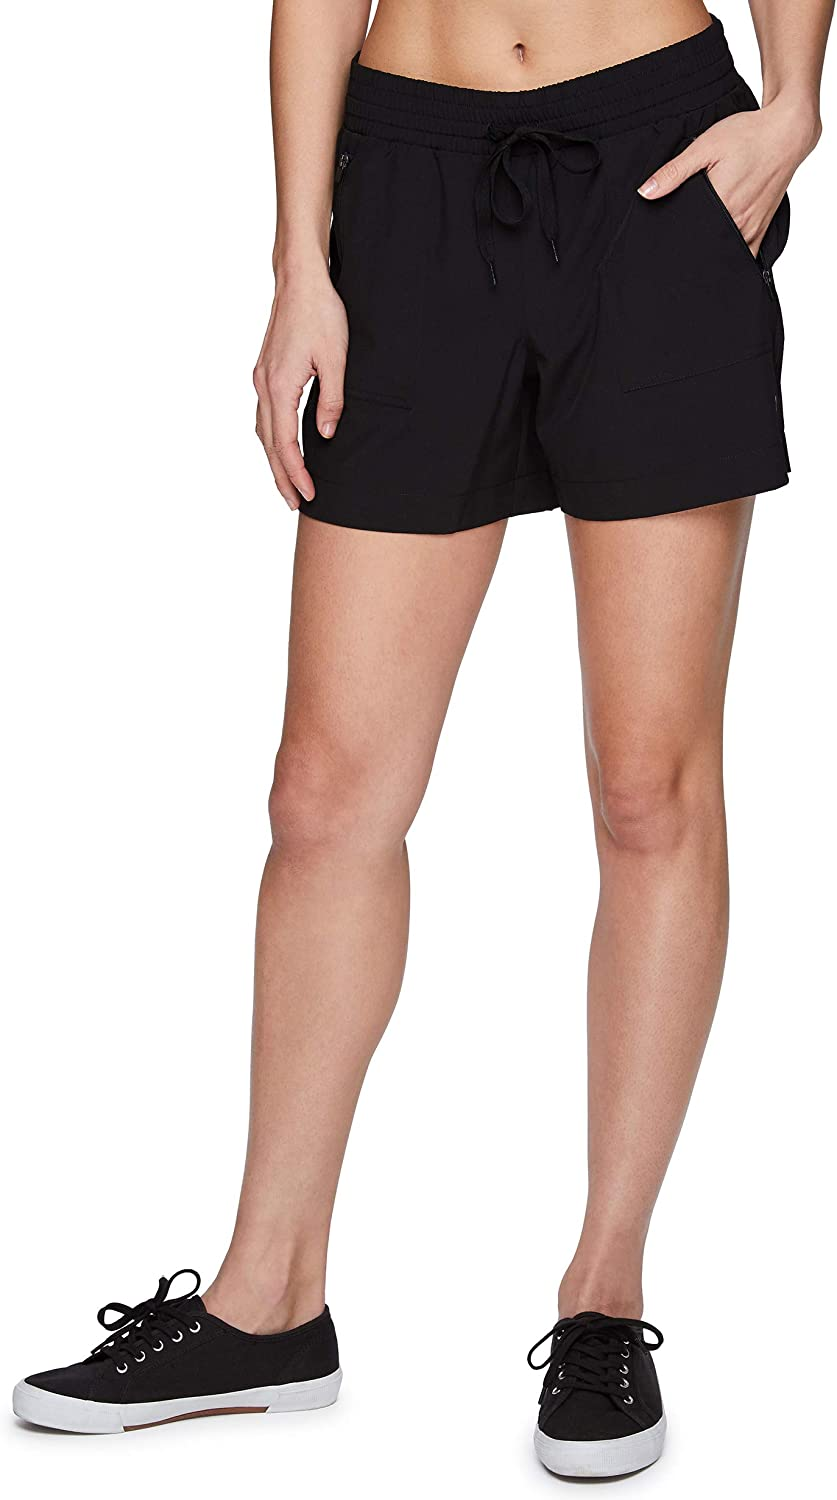 RBX Active Women's Relaxed Fit Breathable Ventilated Stretch Woven Athletic Walking Short with Pockets